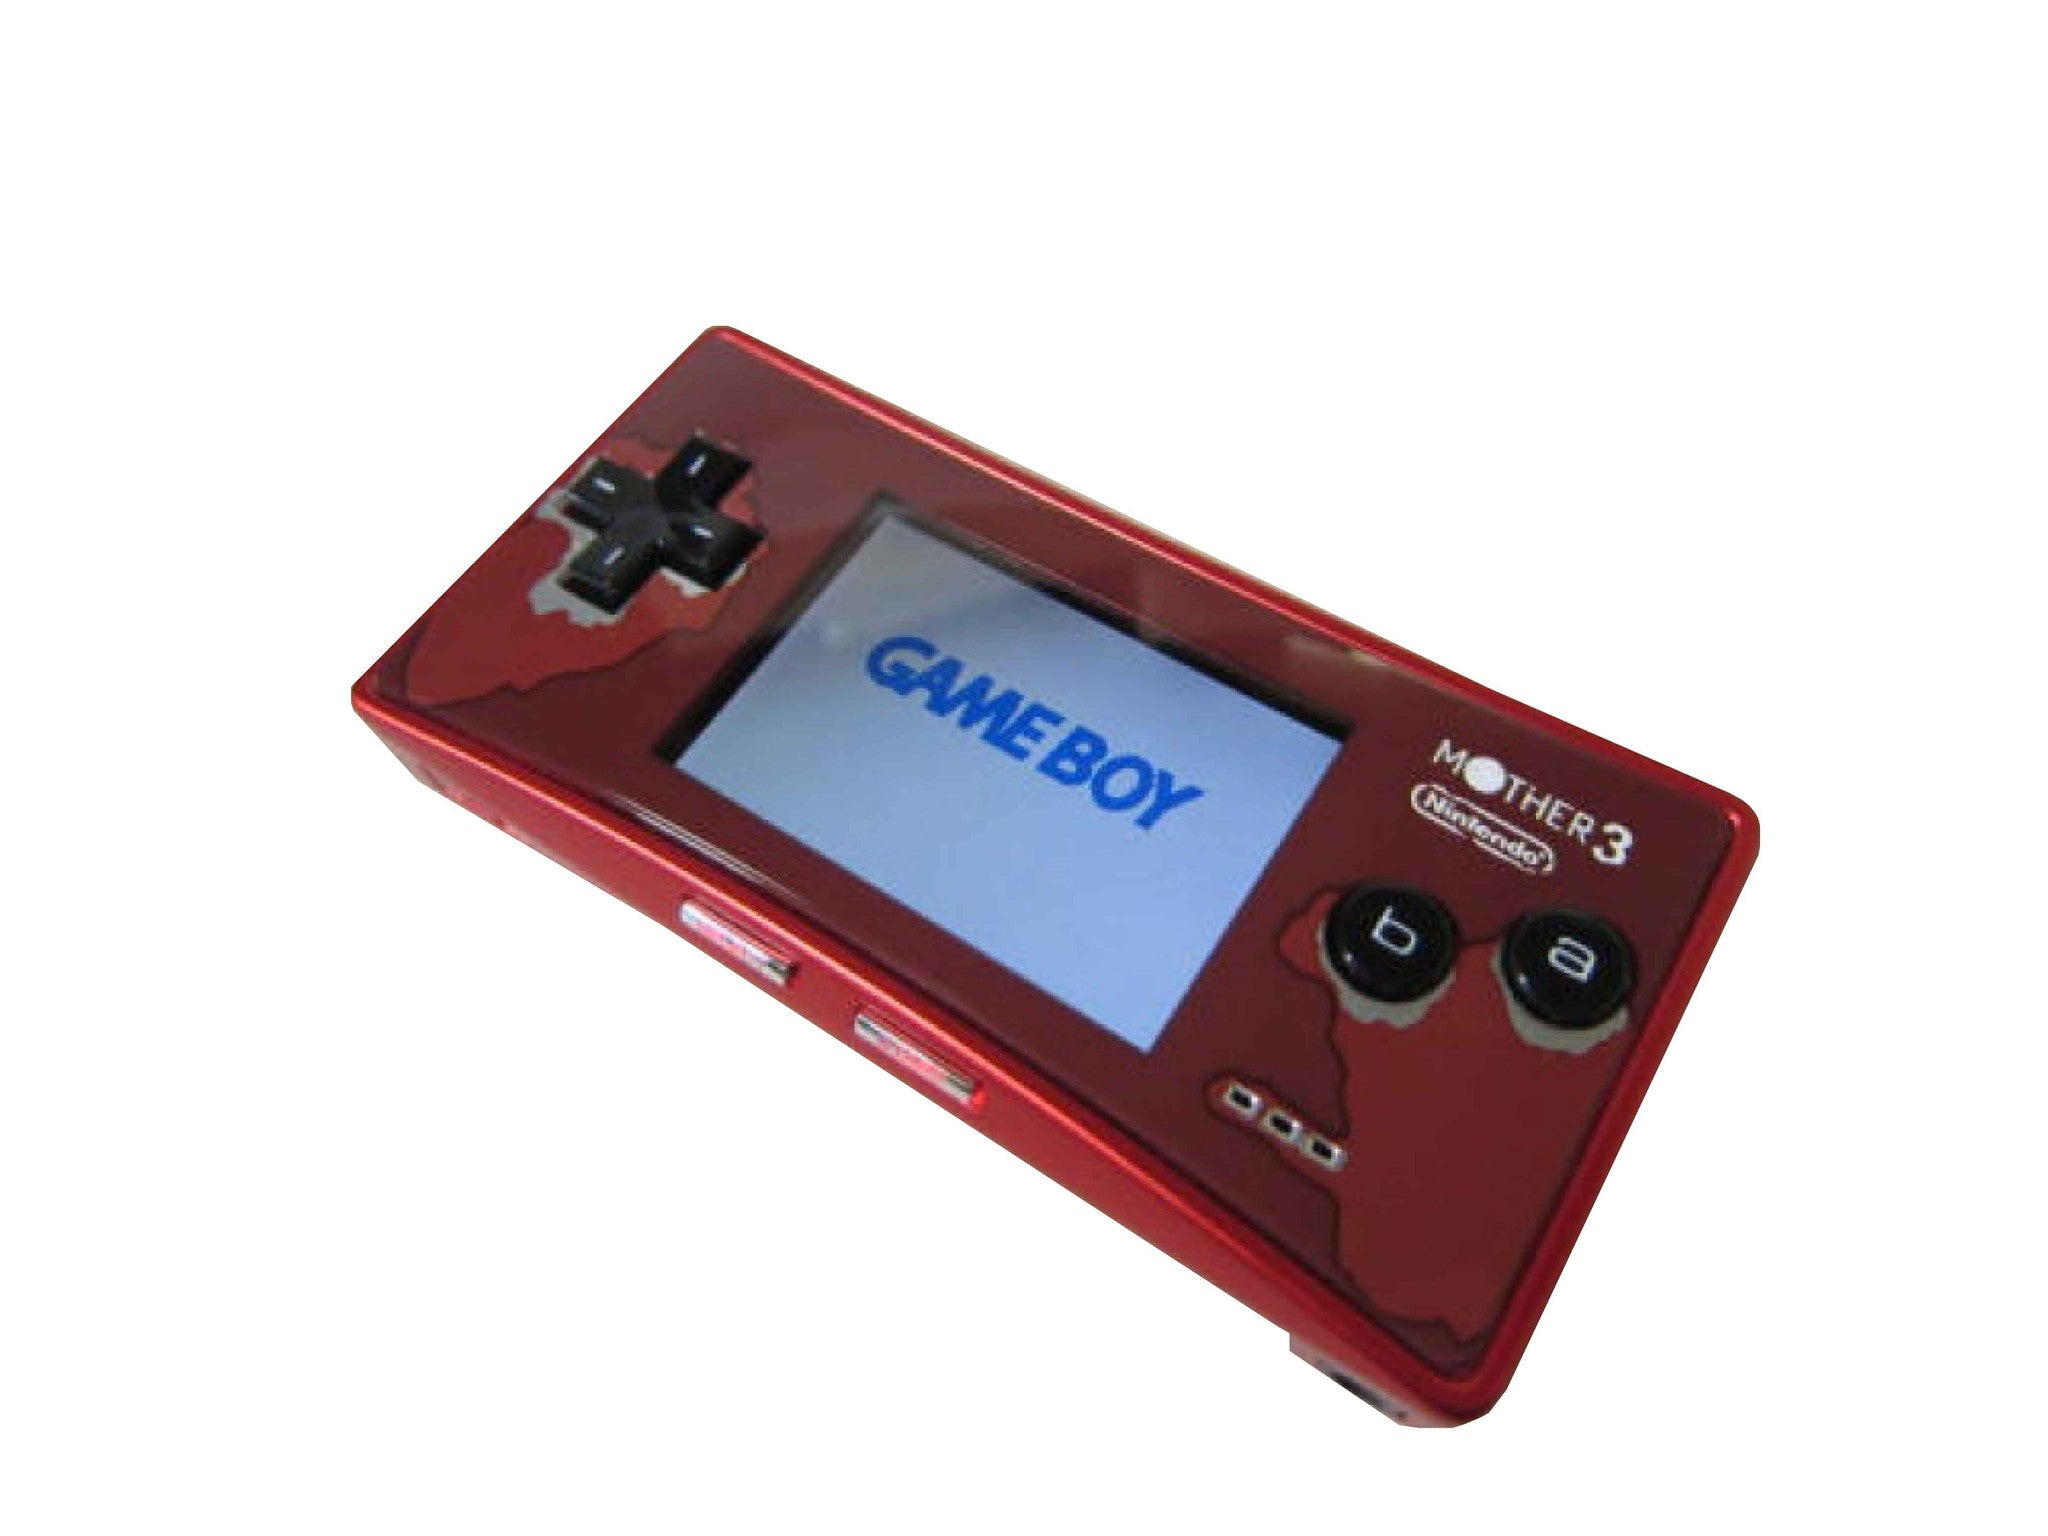 Nintendo Game Boy Micro Mother 3 LIMITED EDITION